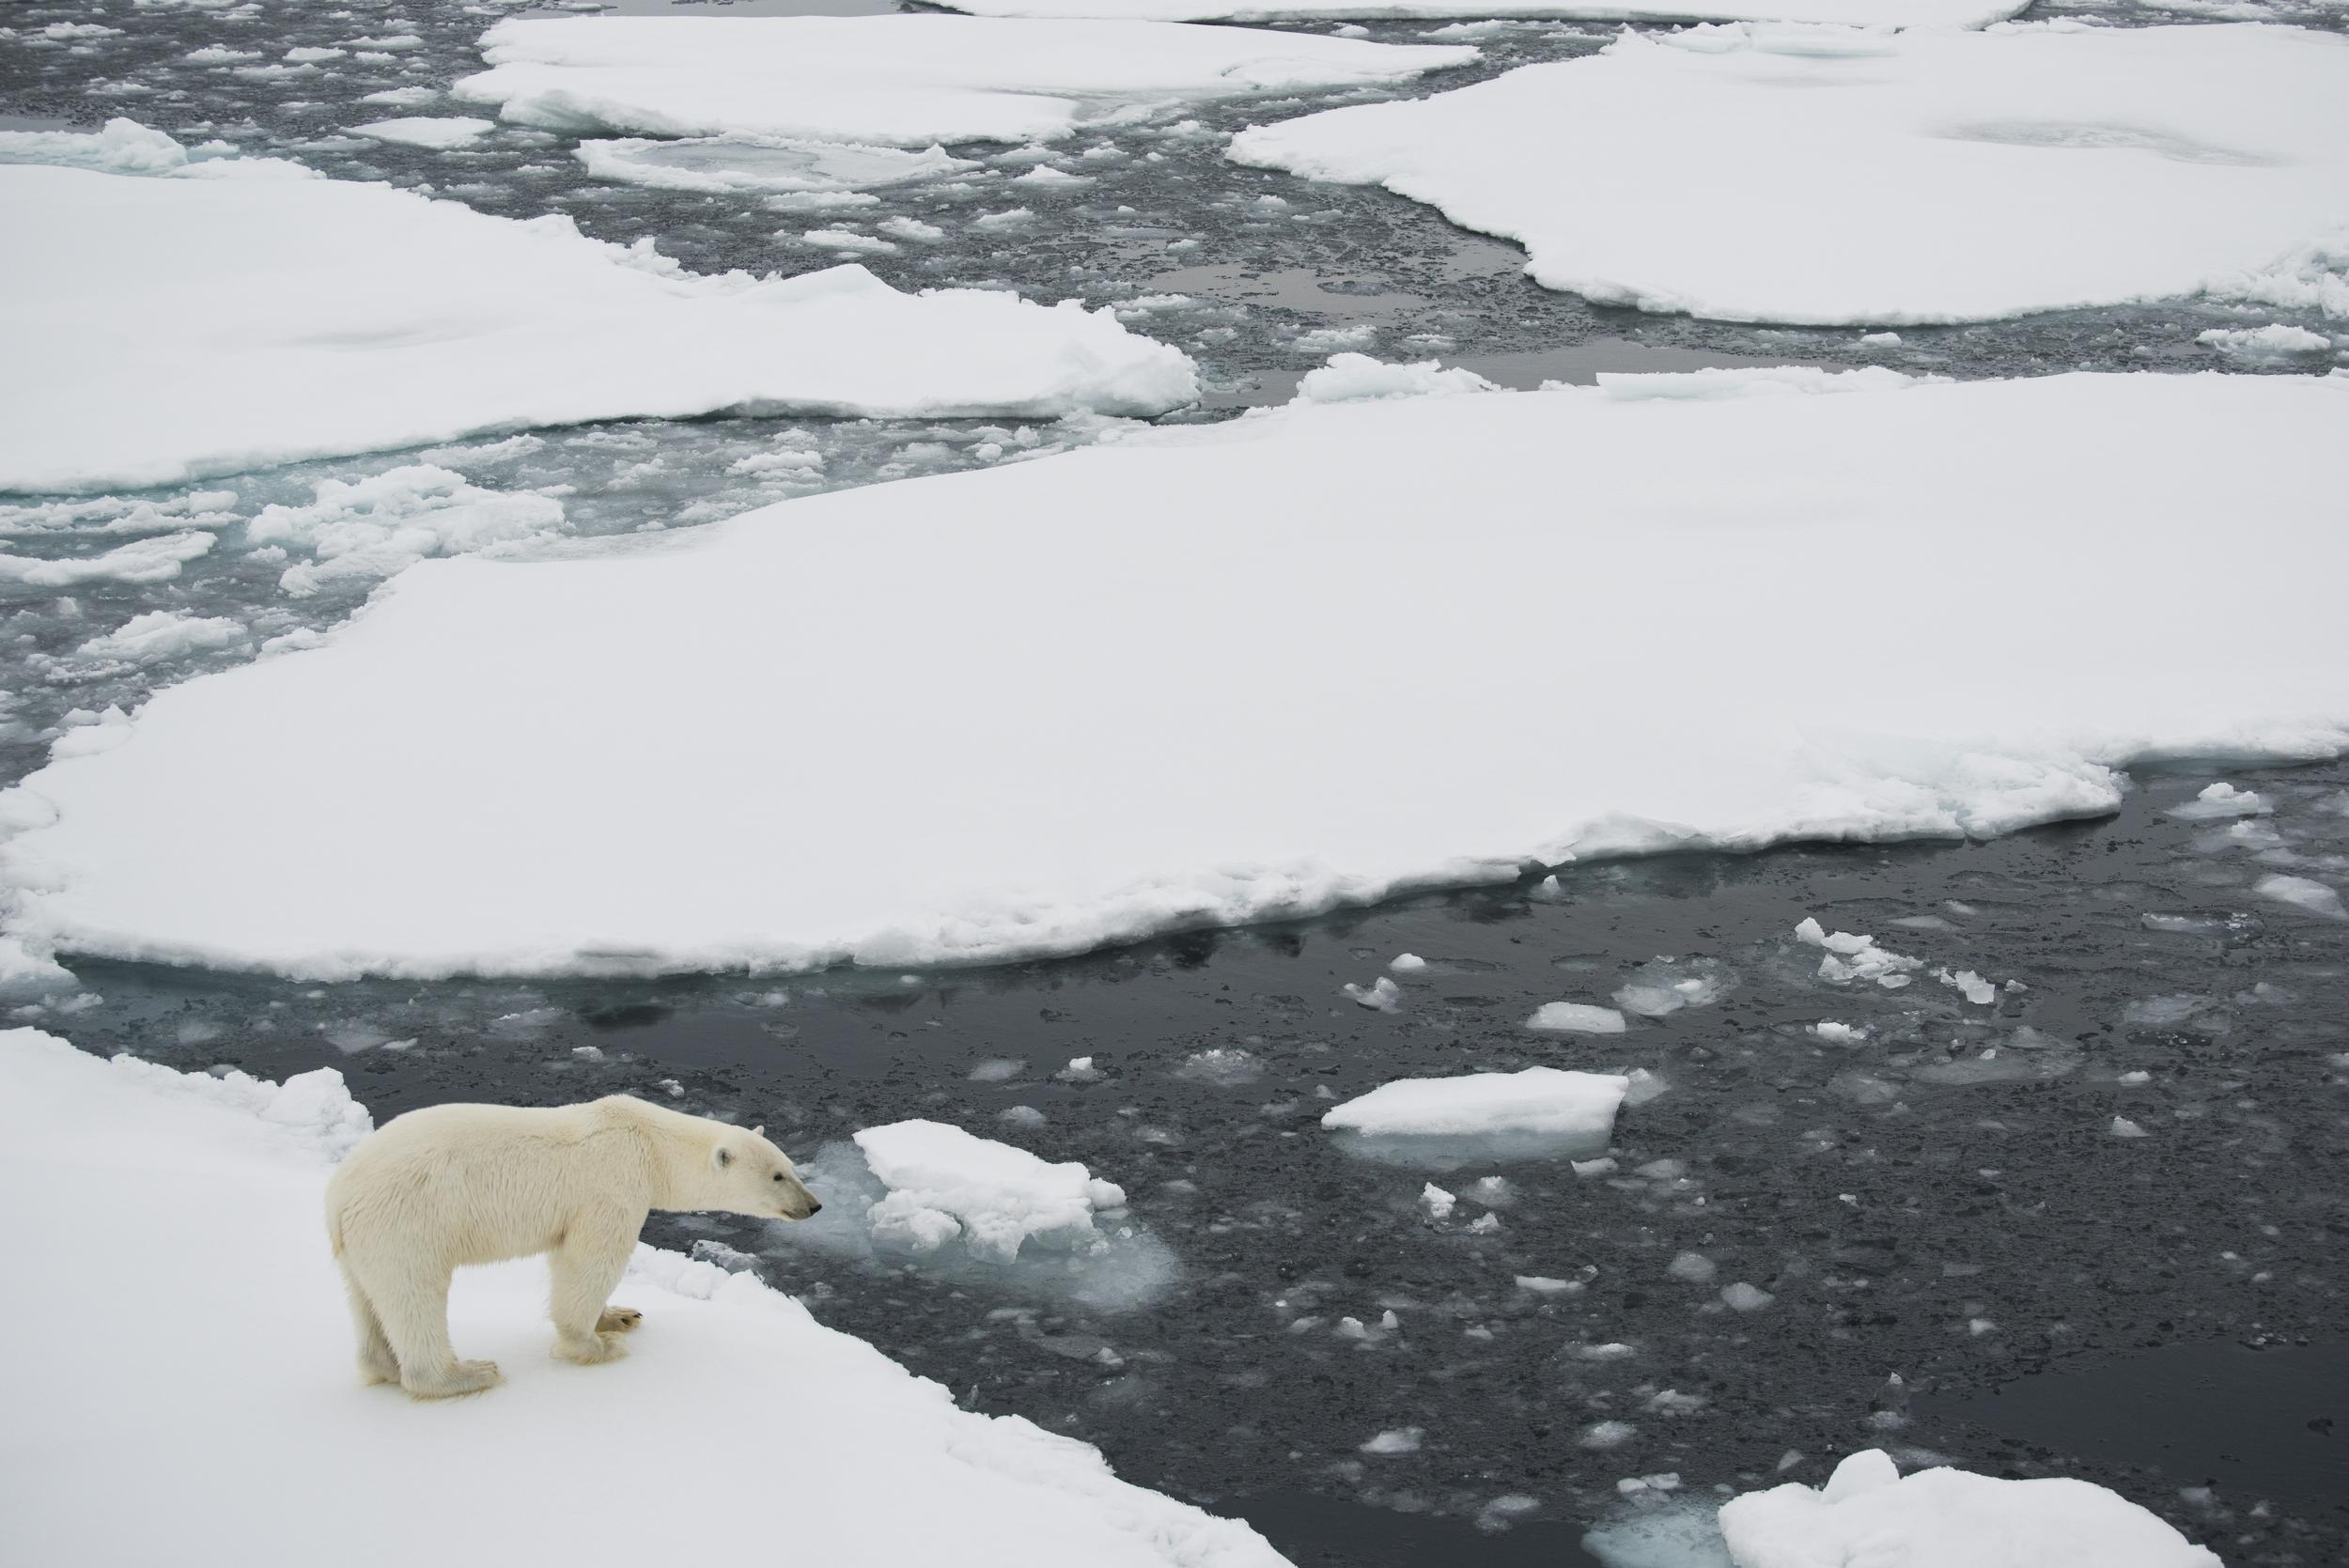 polar bear on edge of ice